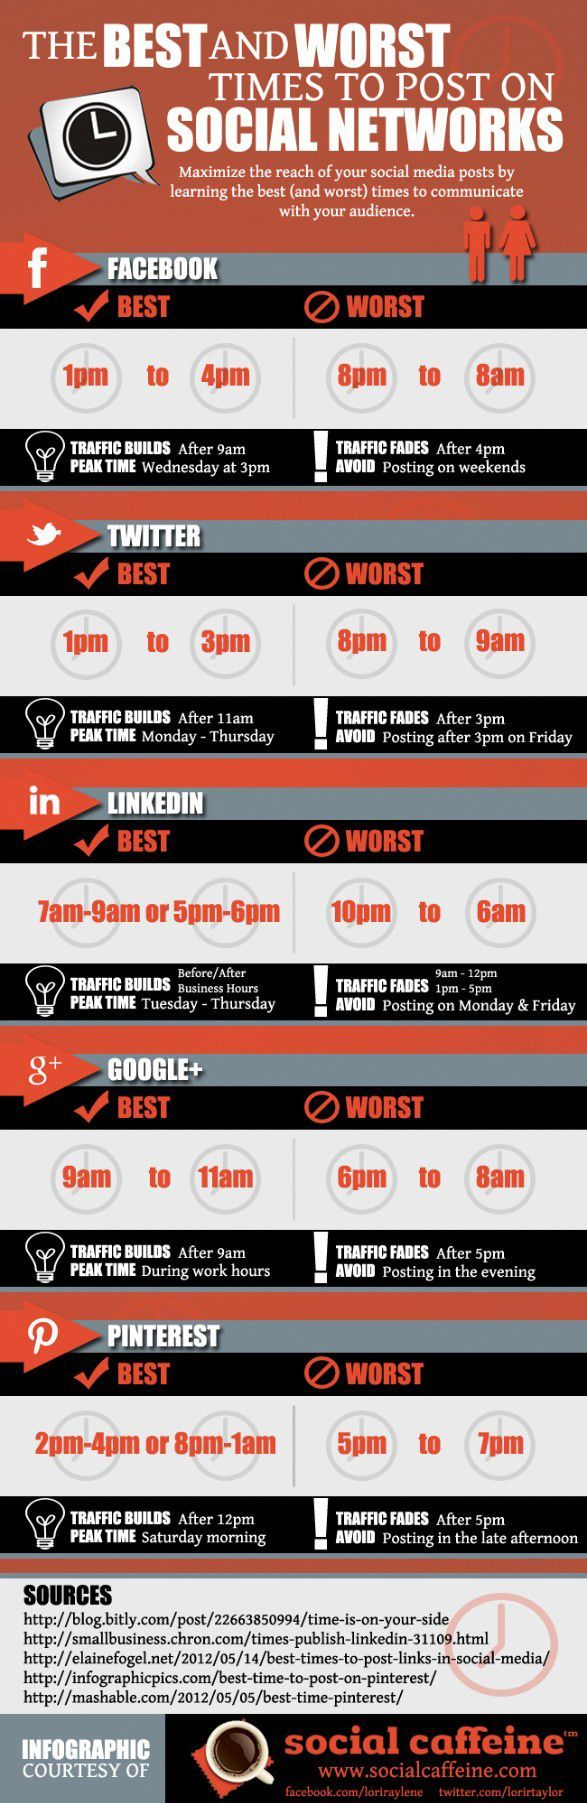 Best and worst times to post on Twitter, Facebook, Linkedin and Google+ |#empowersocial #social media #online